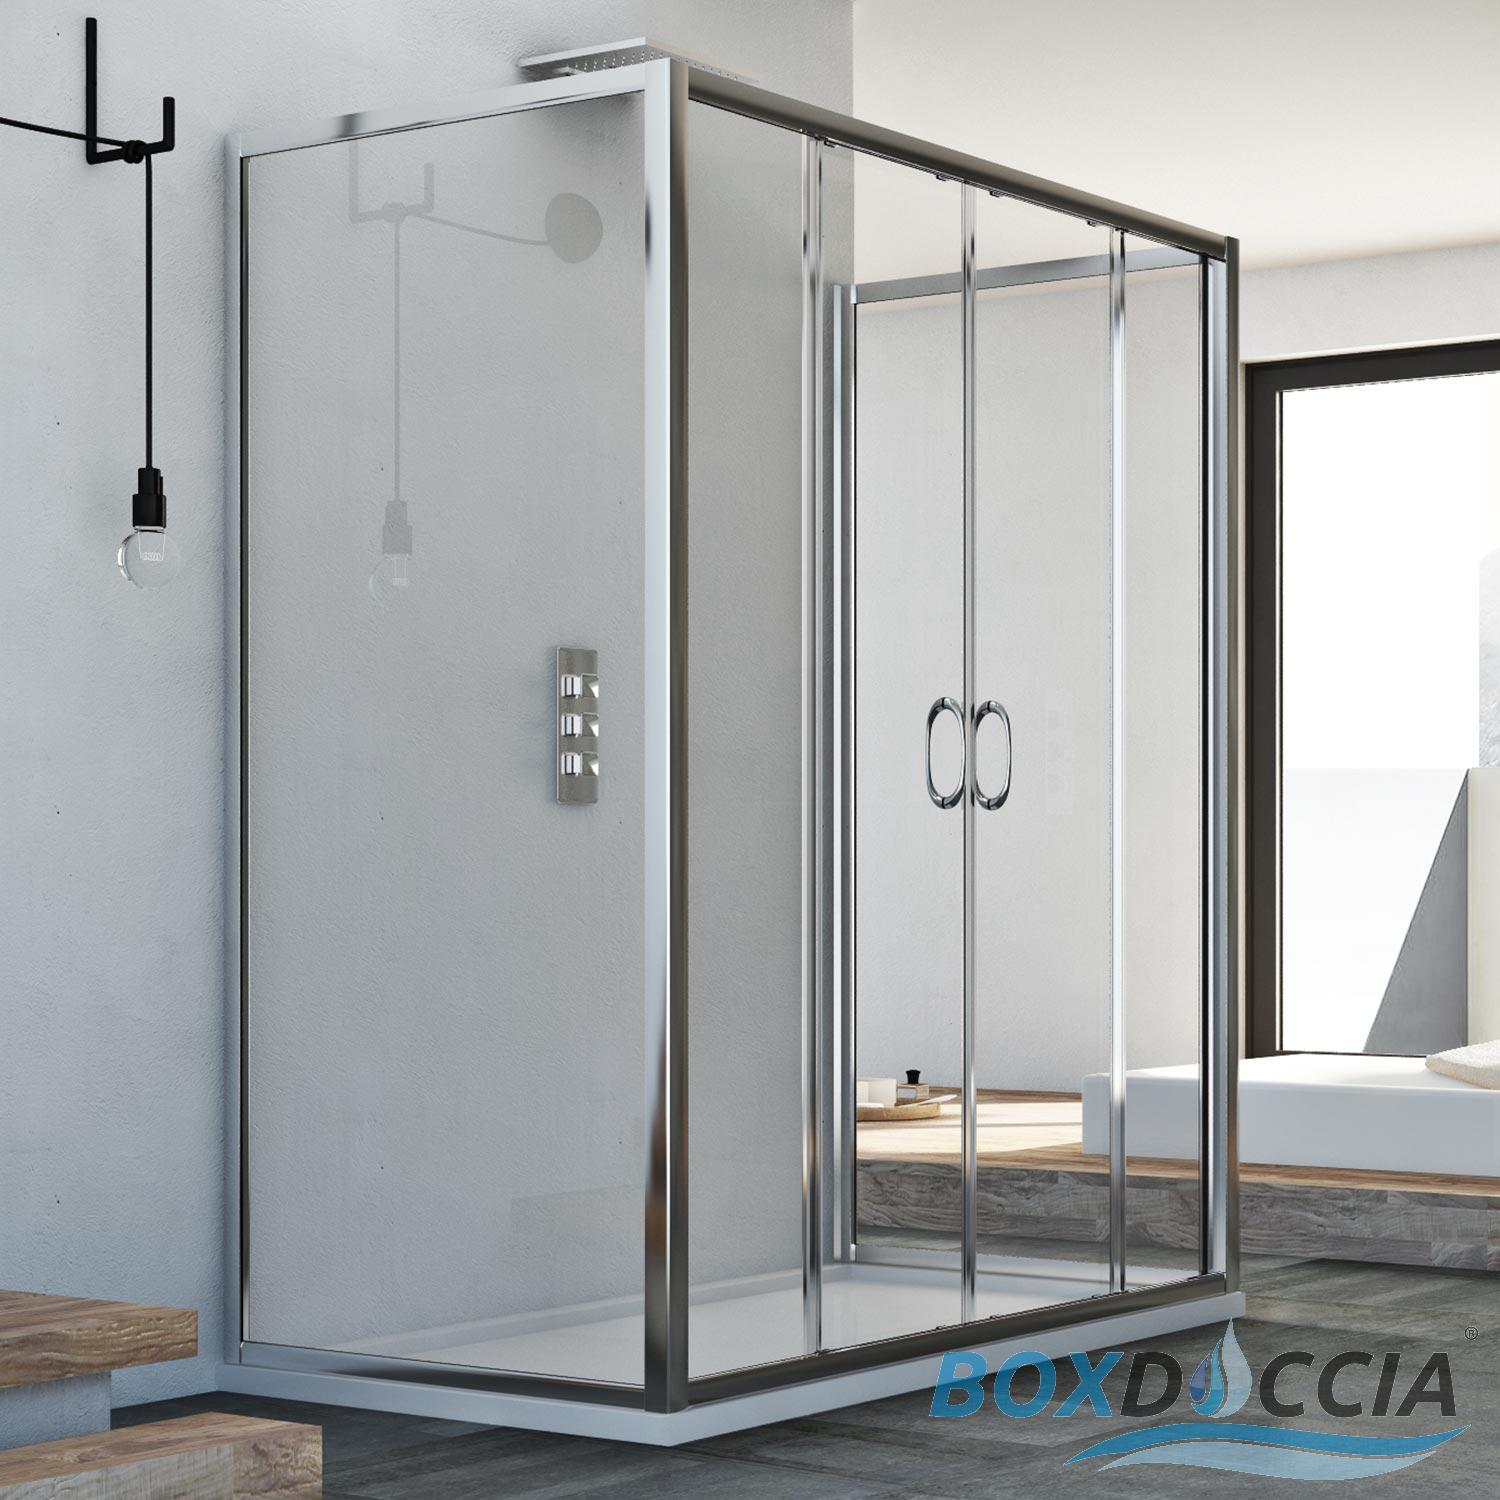 3-SIDED SHOWER CUBICLE SCREEN 2 SLIDING DOORS REAL GLASS CENTRAL ...